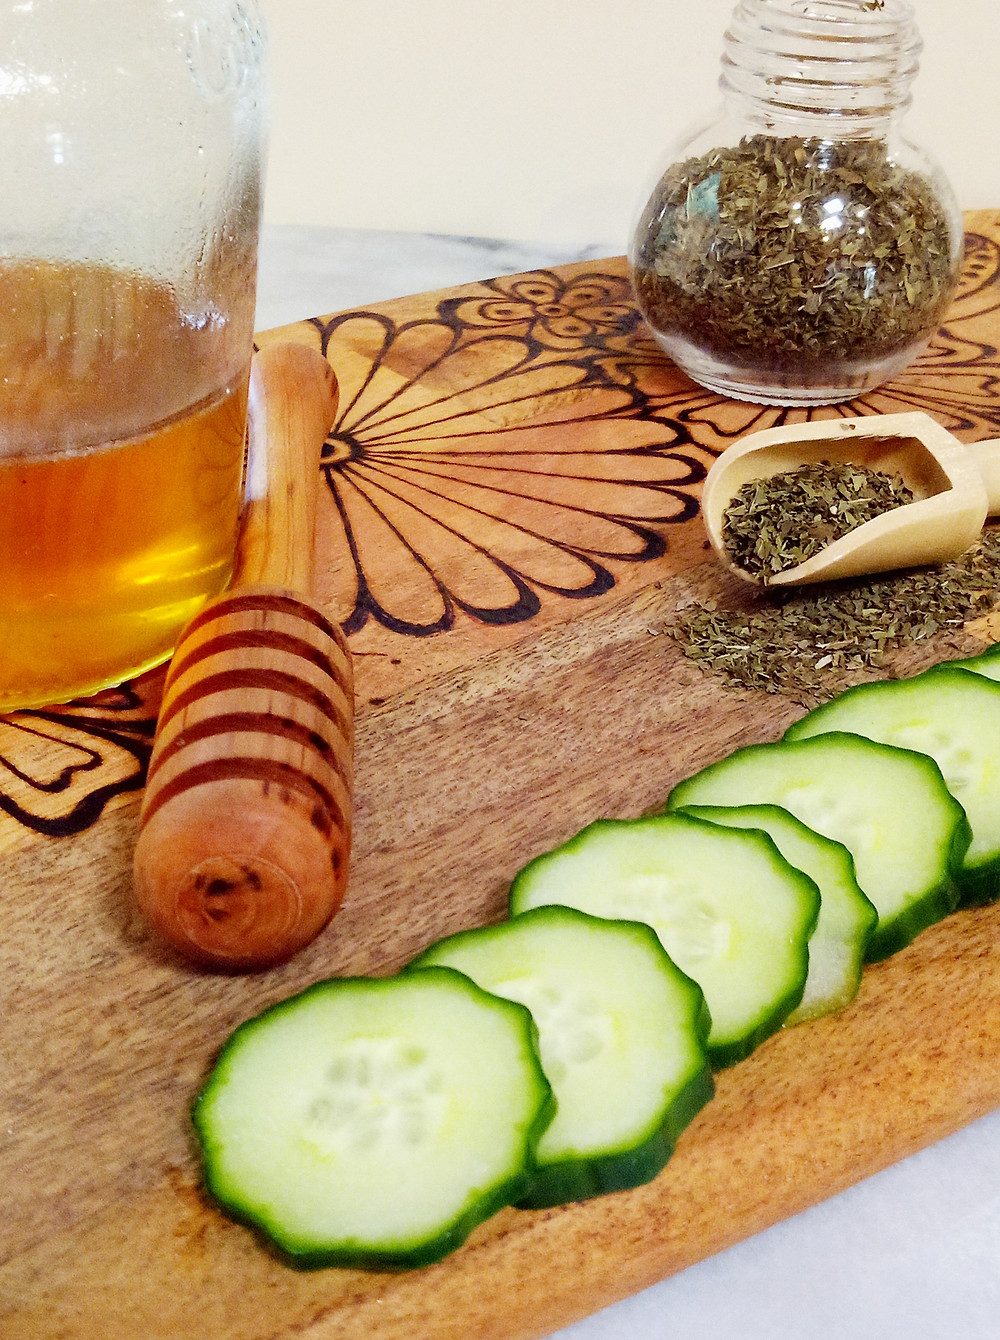 Ingredients for DIY Cucumber, Mint Honey Face Cleanser